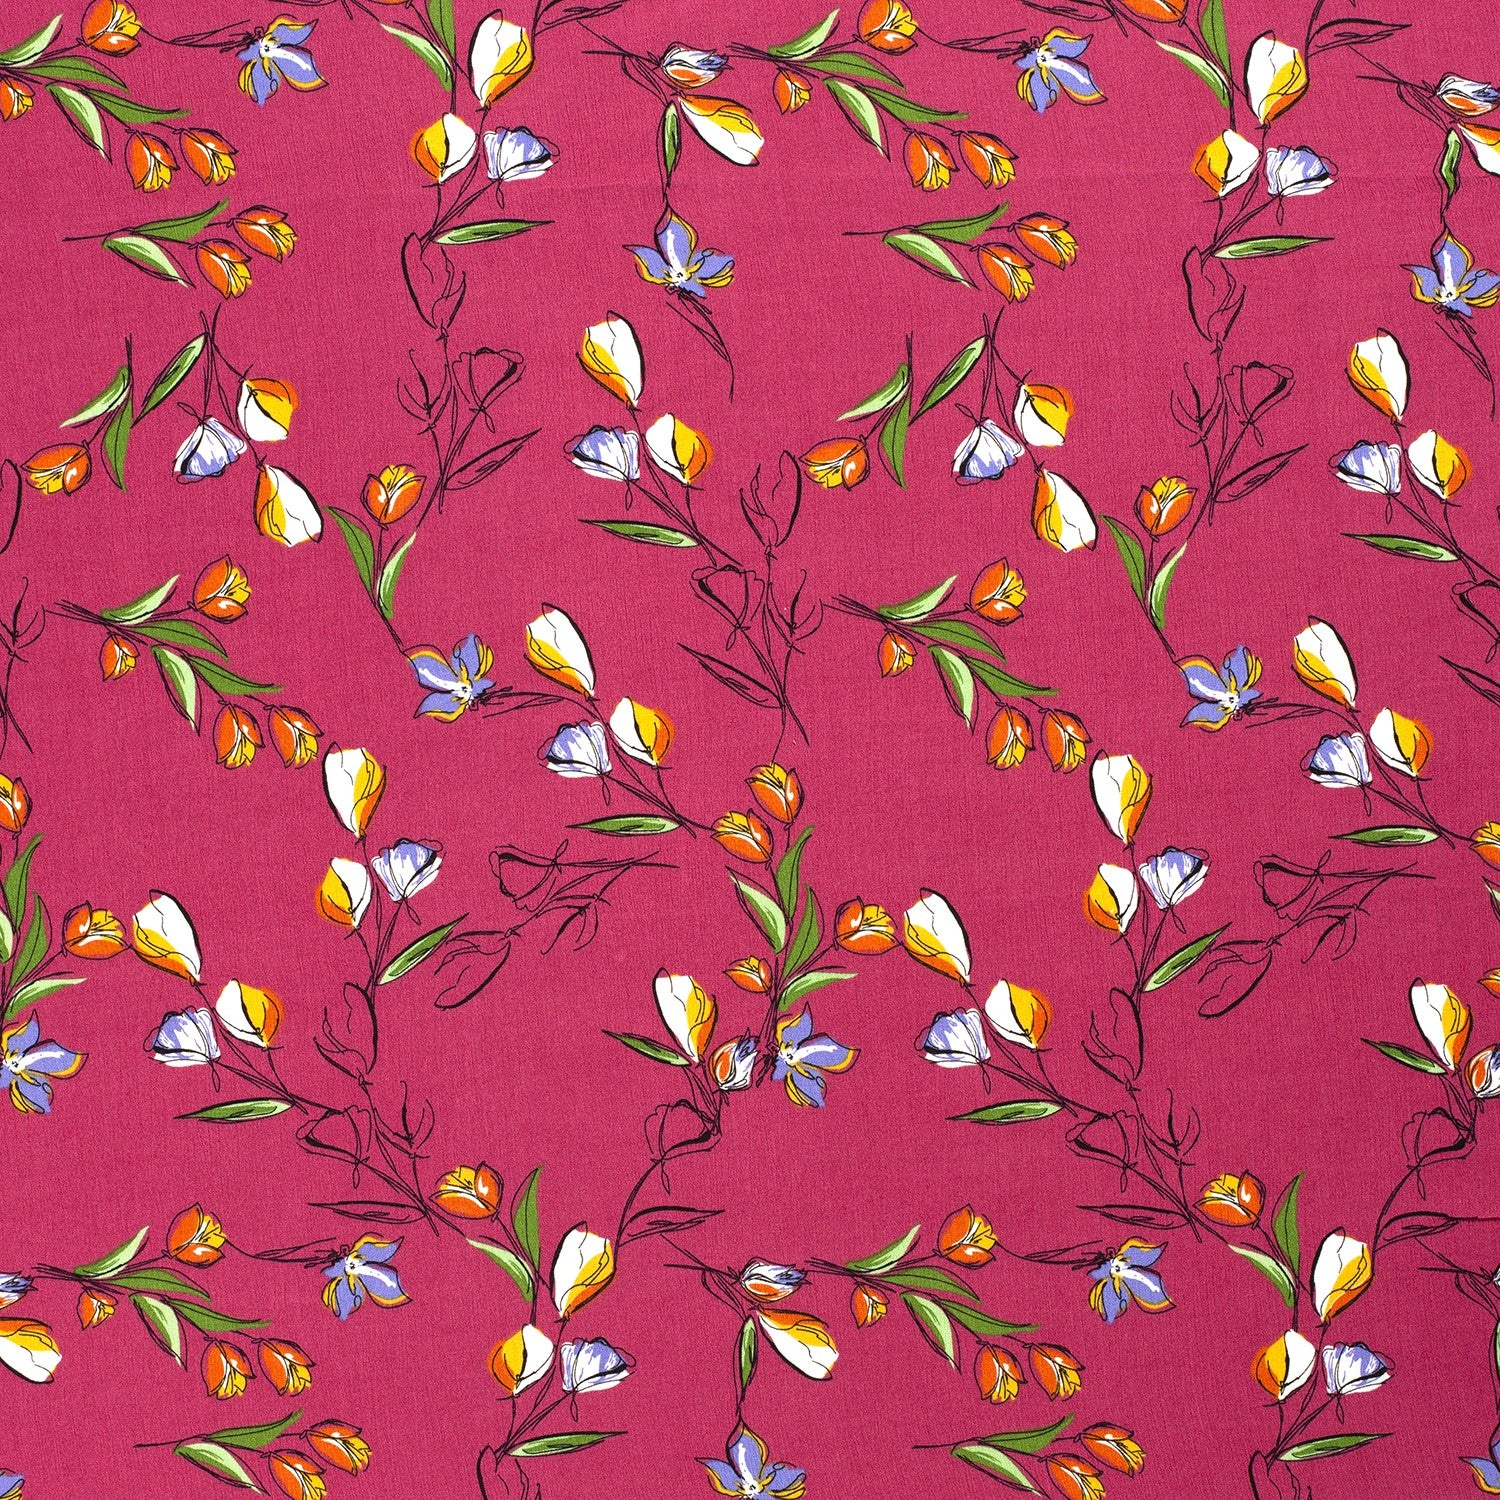 Viscose Crepe Pretty Flowers- Pink $32.00/metre